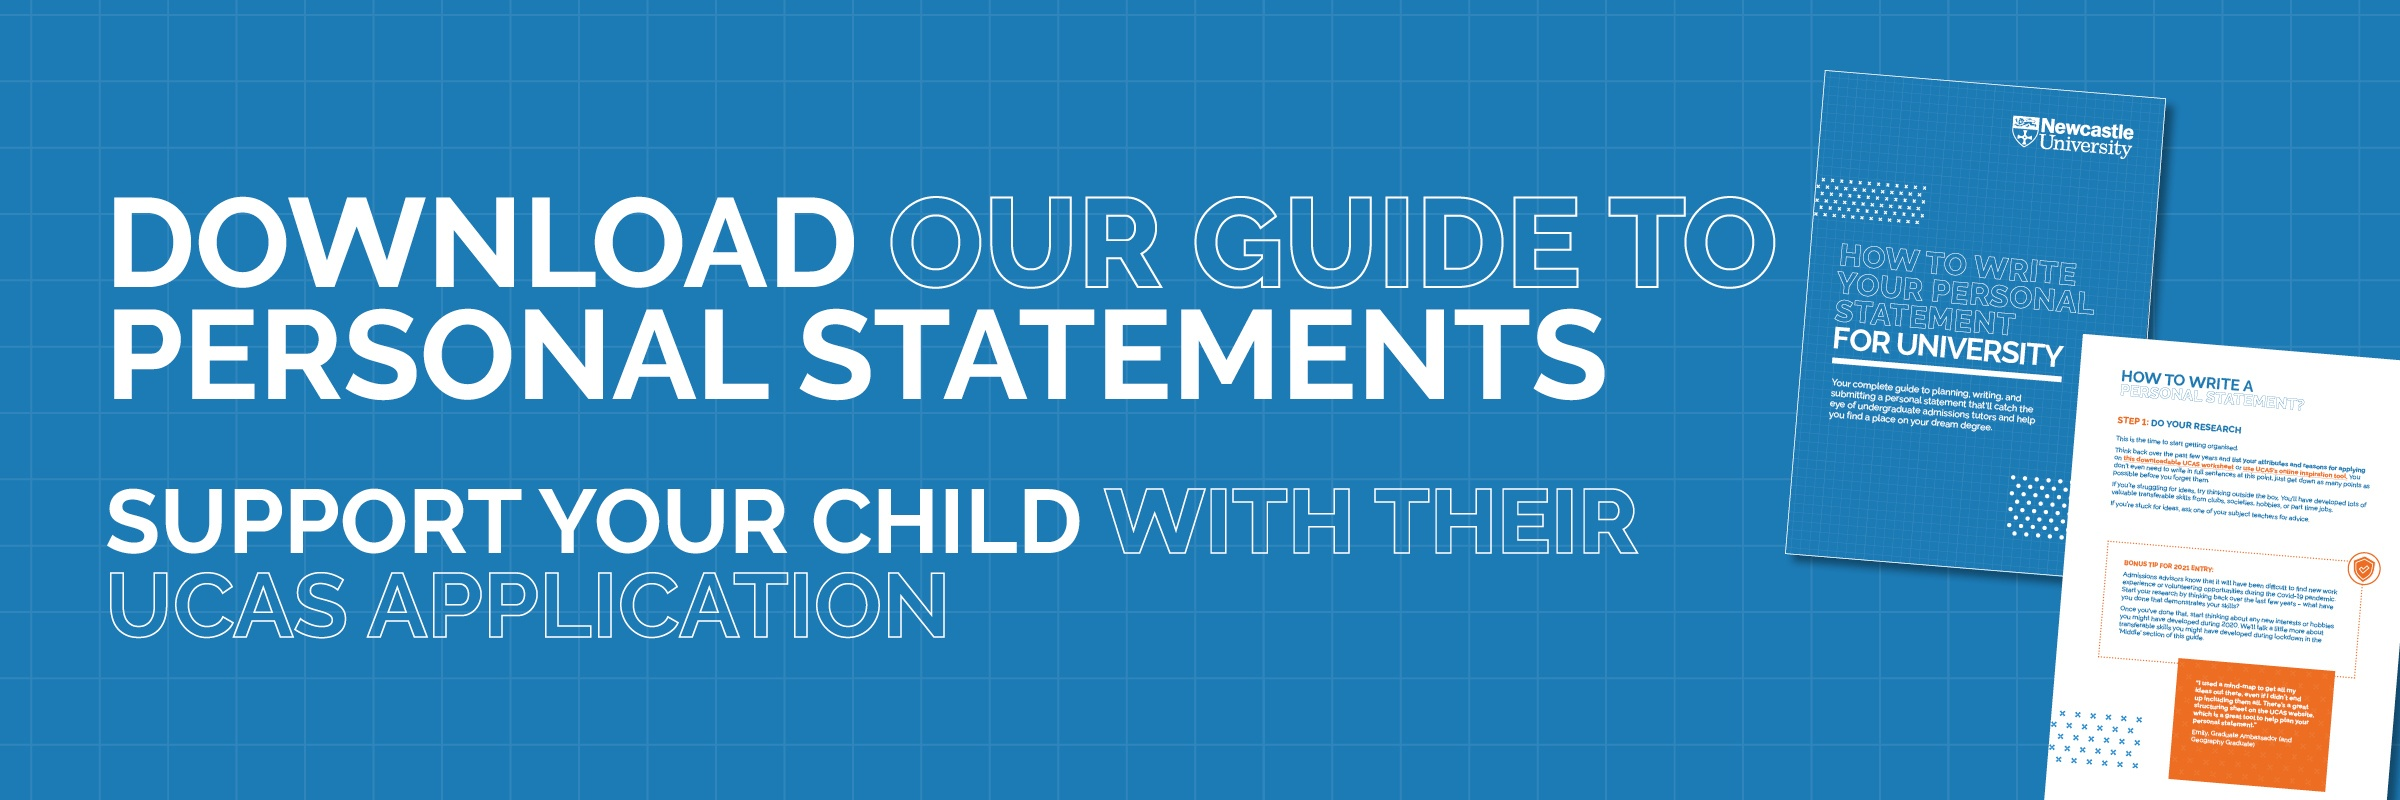 download your parents guide to personal statements